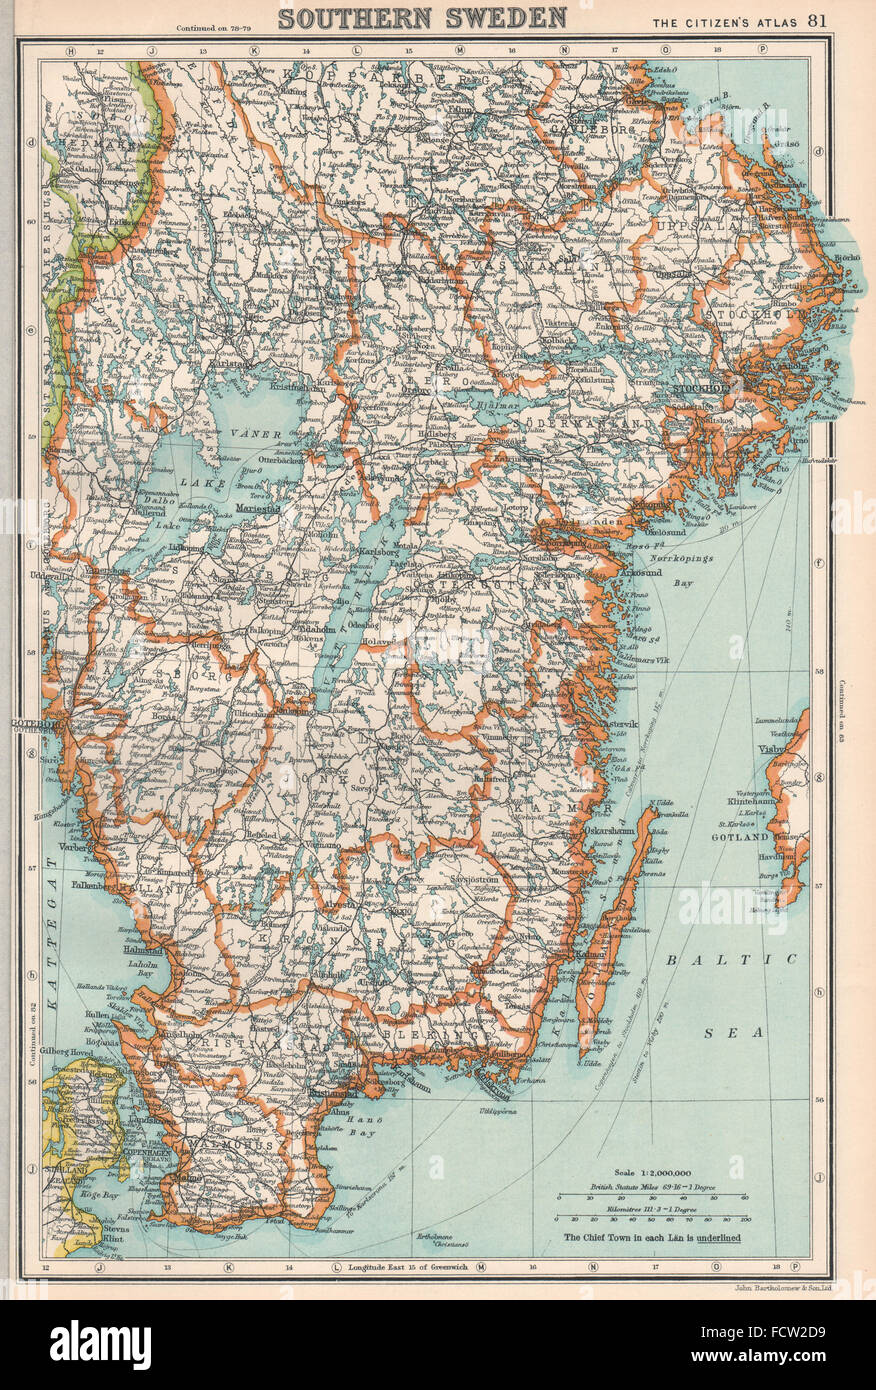 Sweden maps stock photos sweden maps stock images alamy sweden southern sweden bartholomew 1924 vintage map stock image gumiabroncs Choice Image